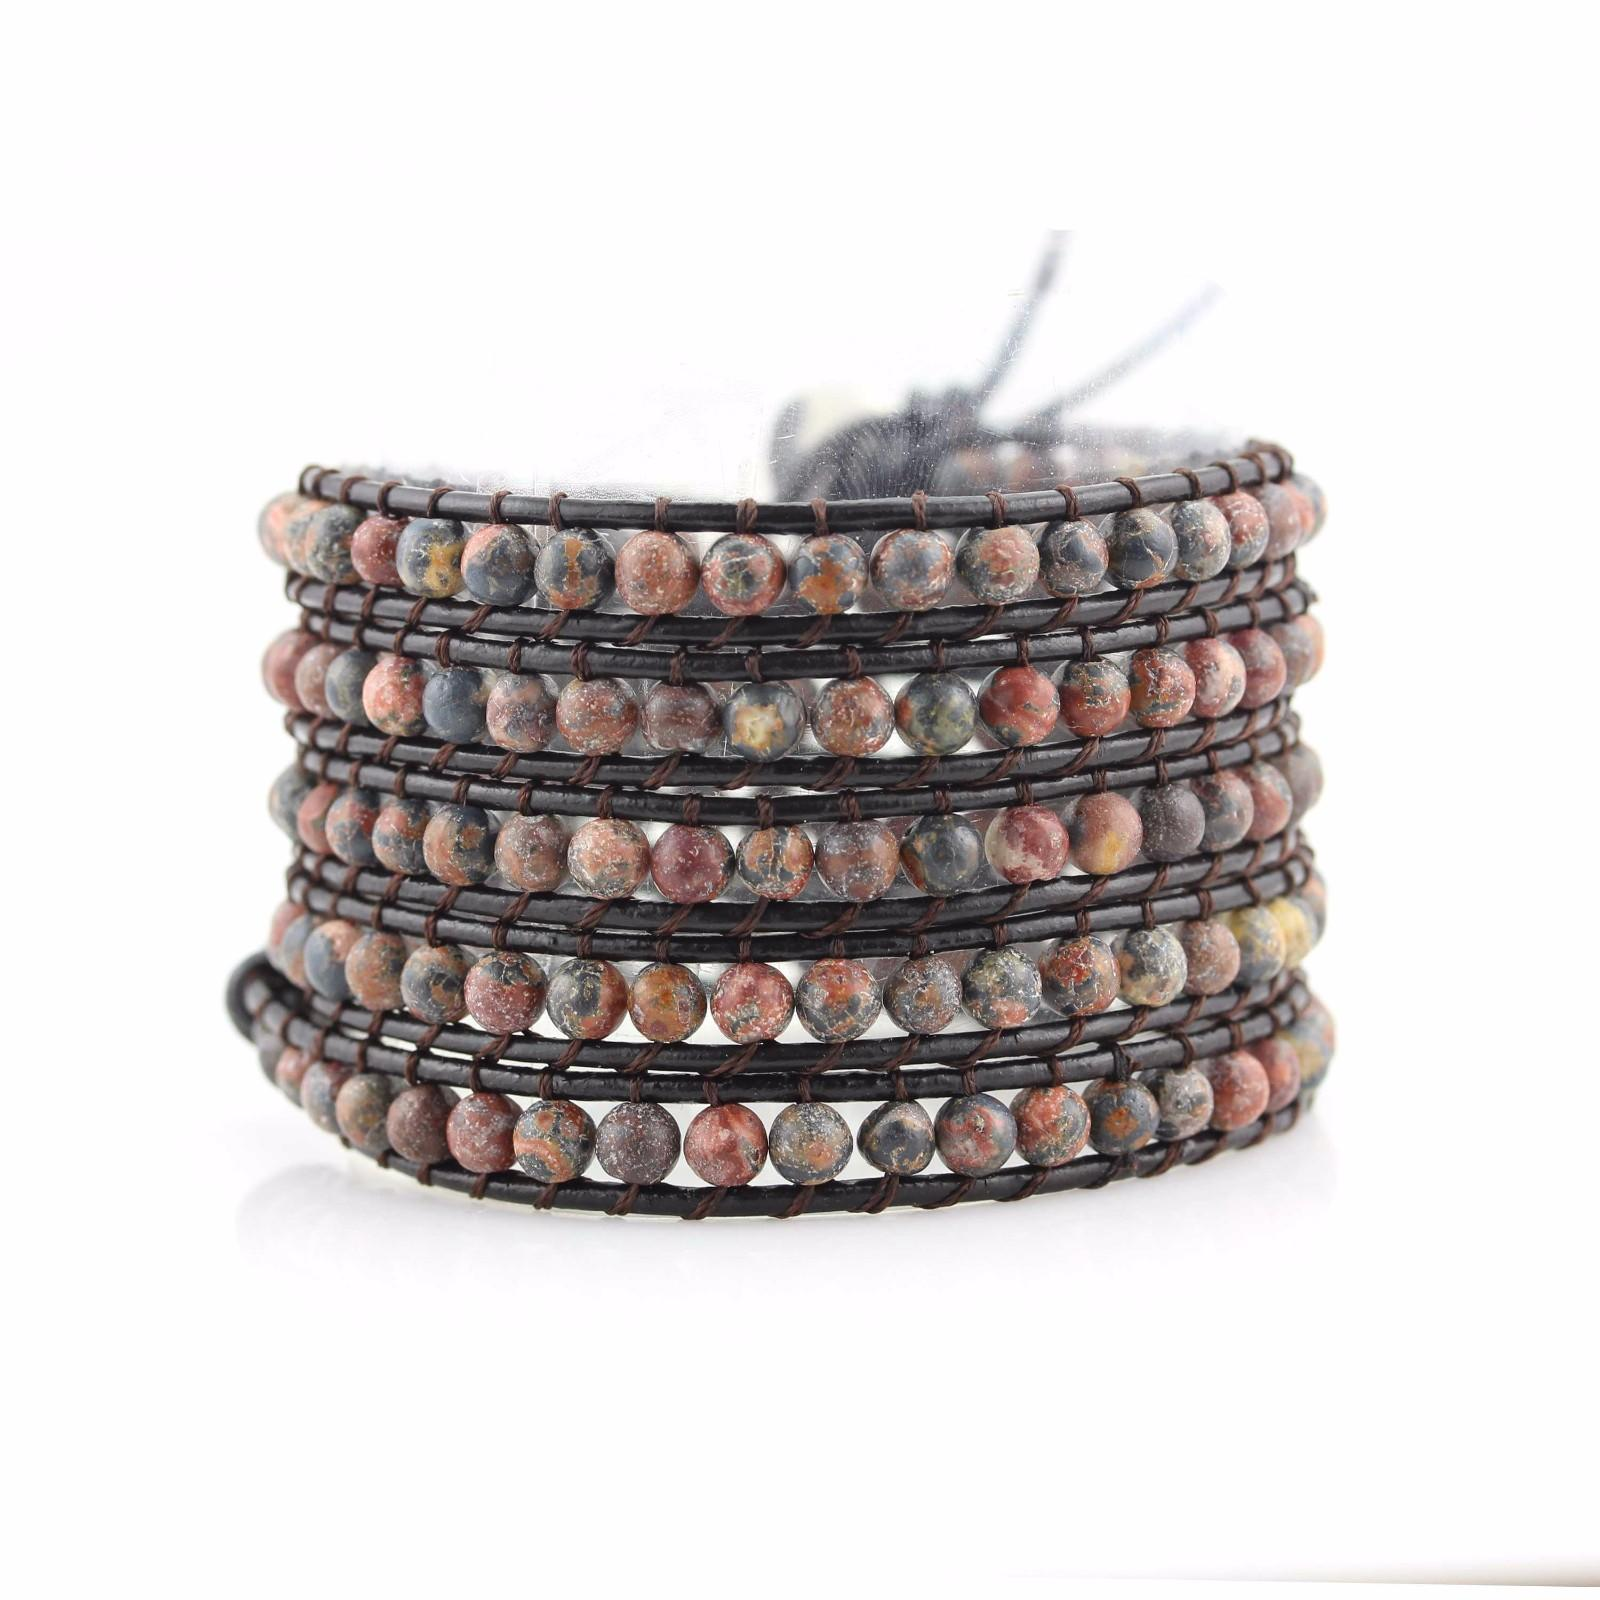 TTT Jewelry bead natural japanese womens cuff bracelet leather